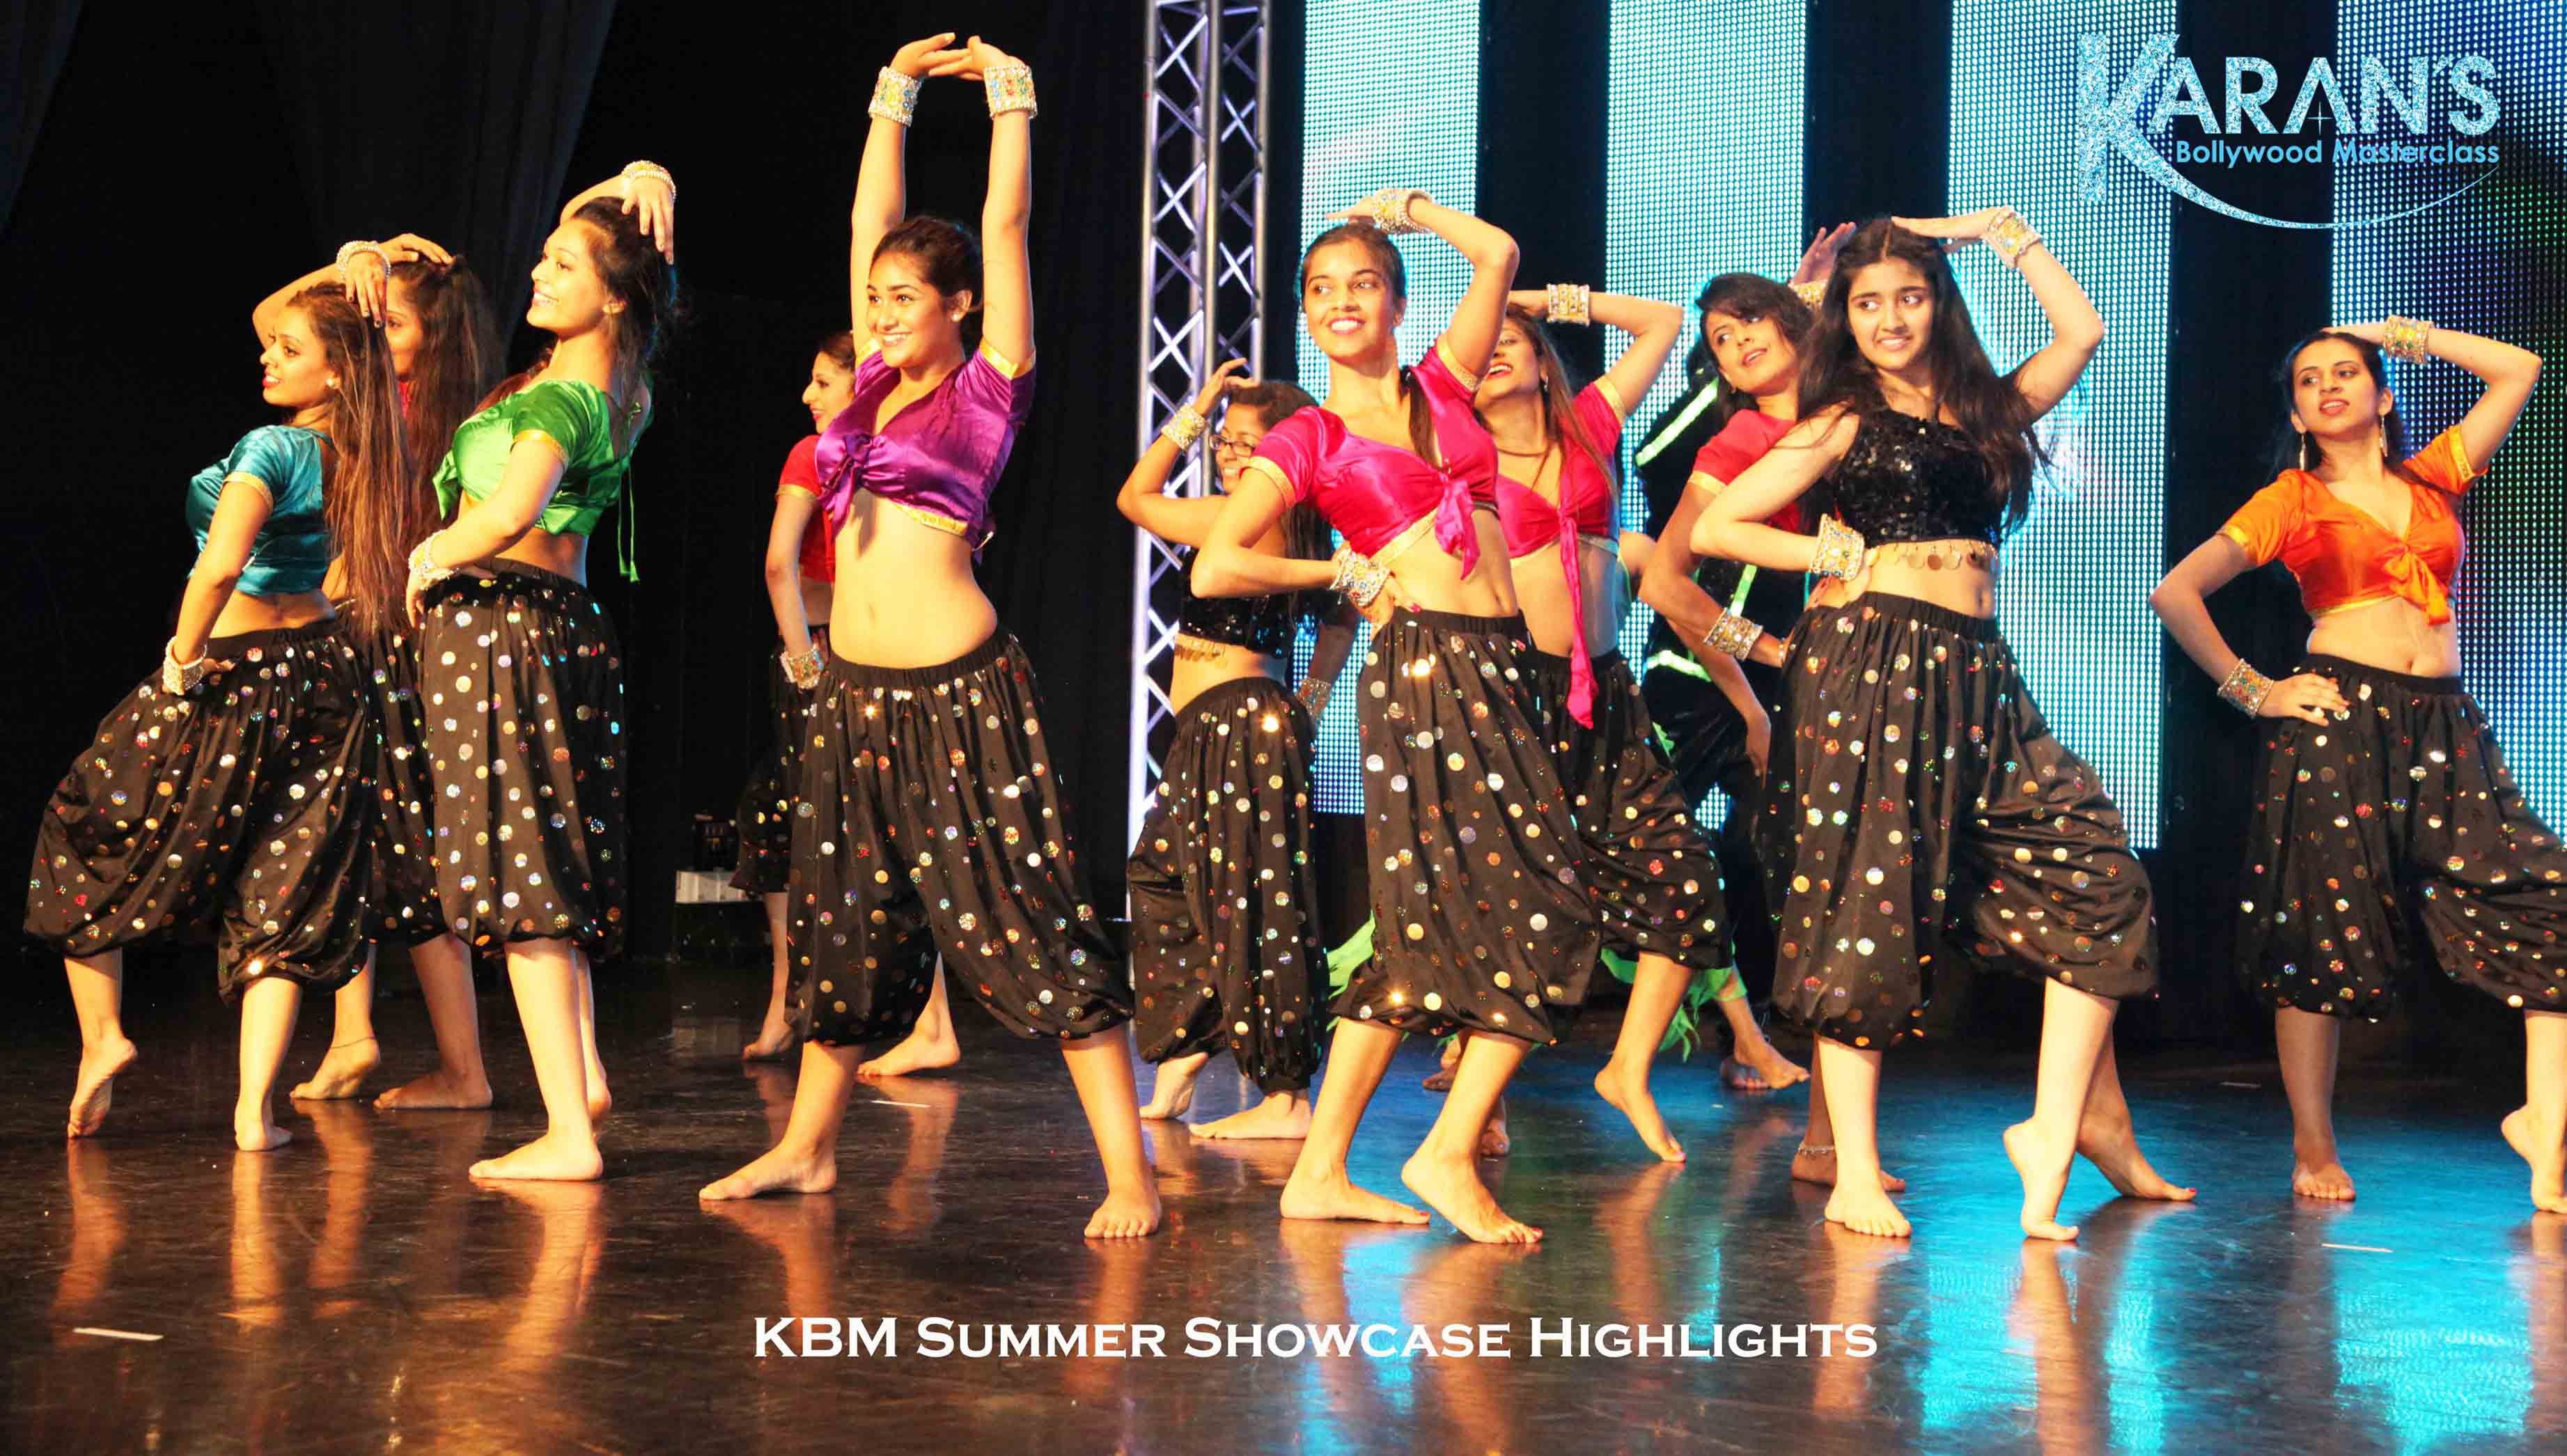 Karan's Bollywood Masterclass Revolution Dancers